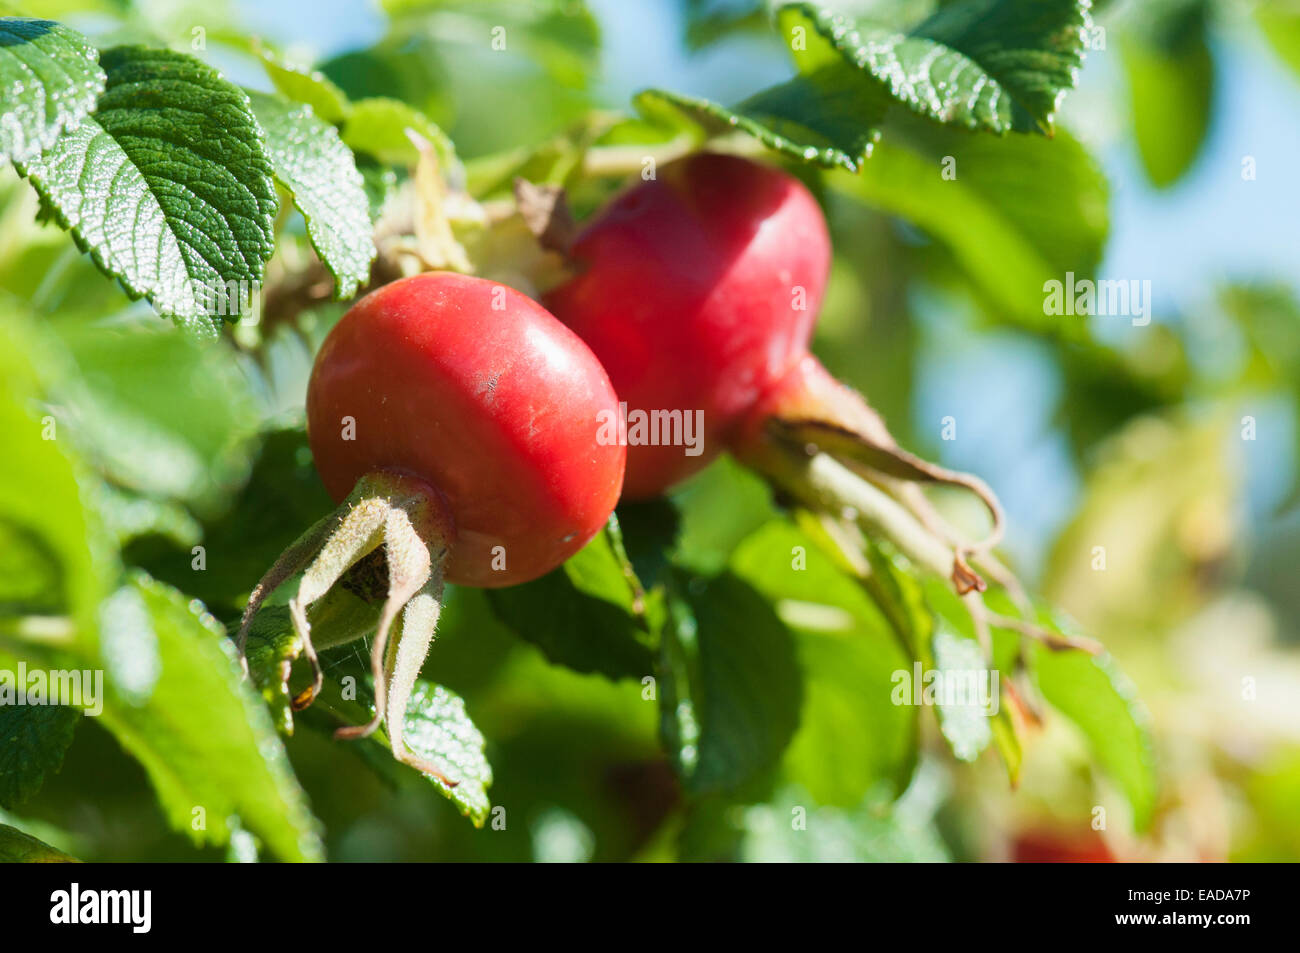 Rose, Rosa rugosa, Red subject, Green background. - Stock Image